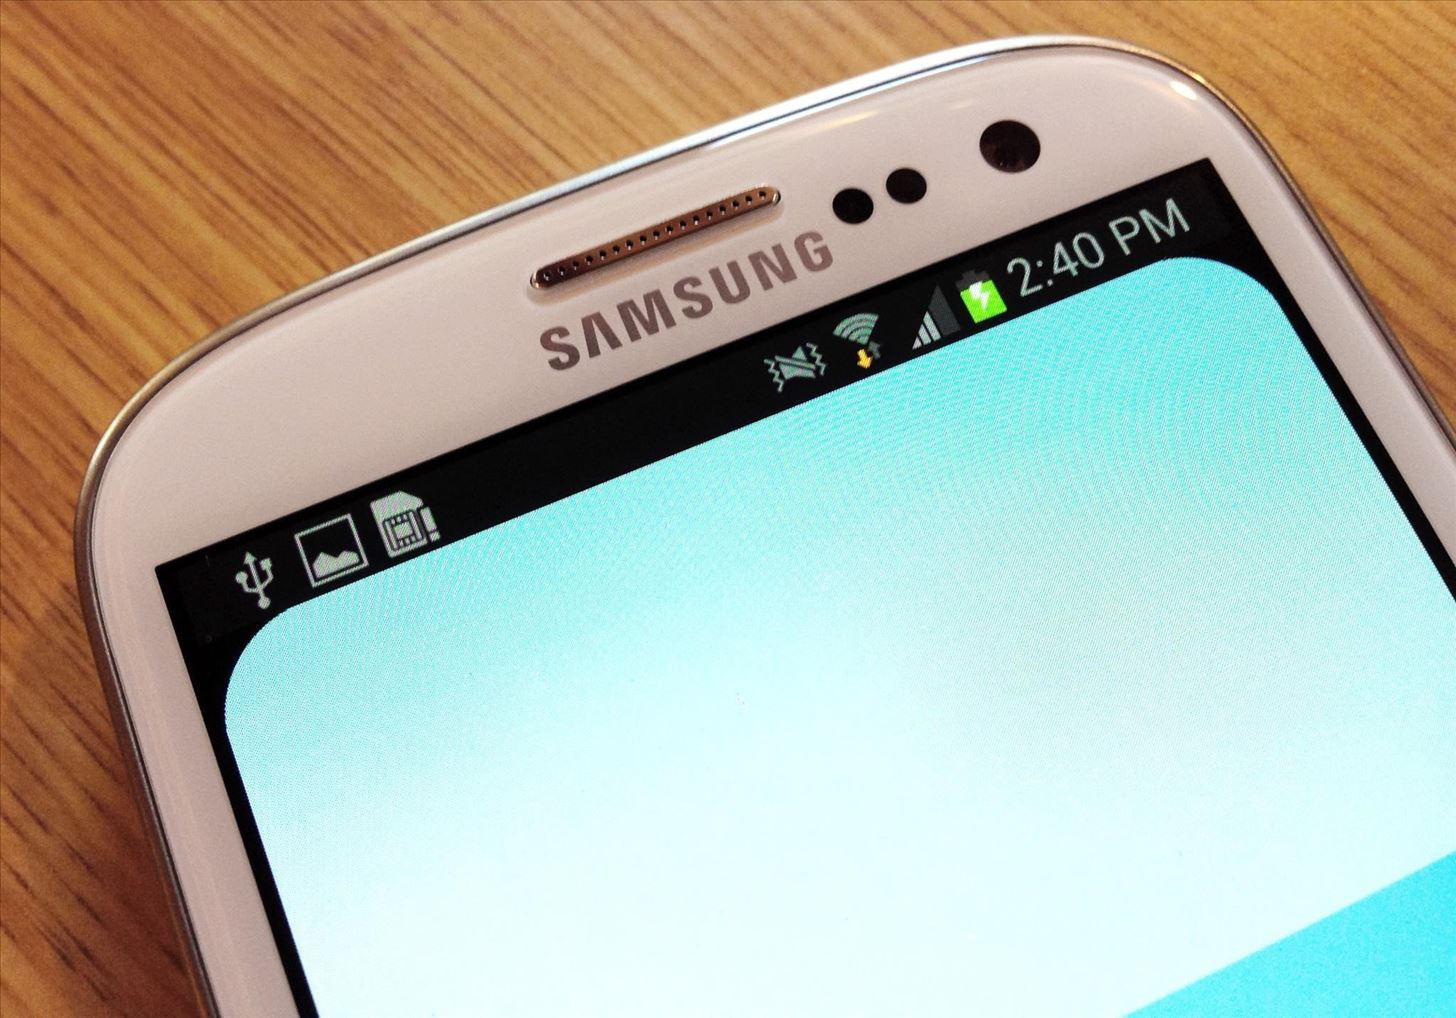 How to Get Rounded Screen Corners on Your Samsung Galaxy S3 or Other Android Device